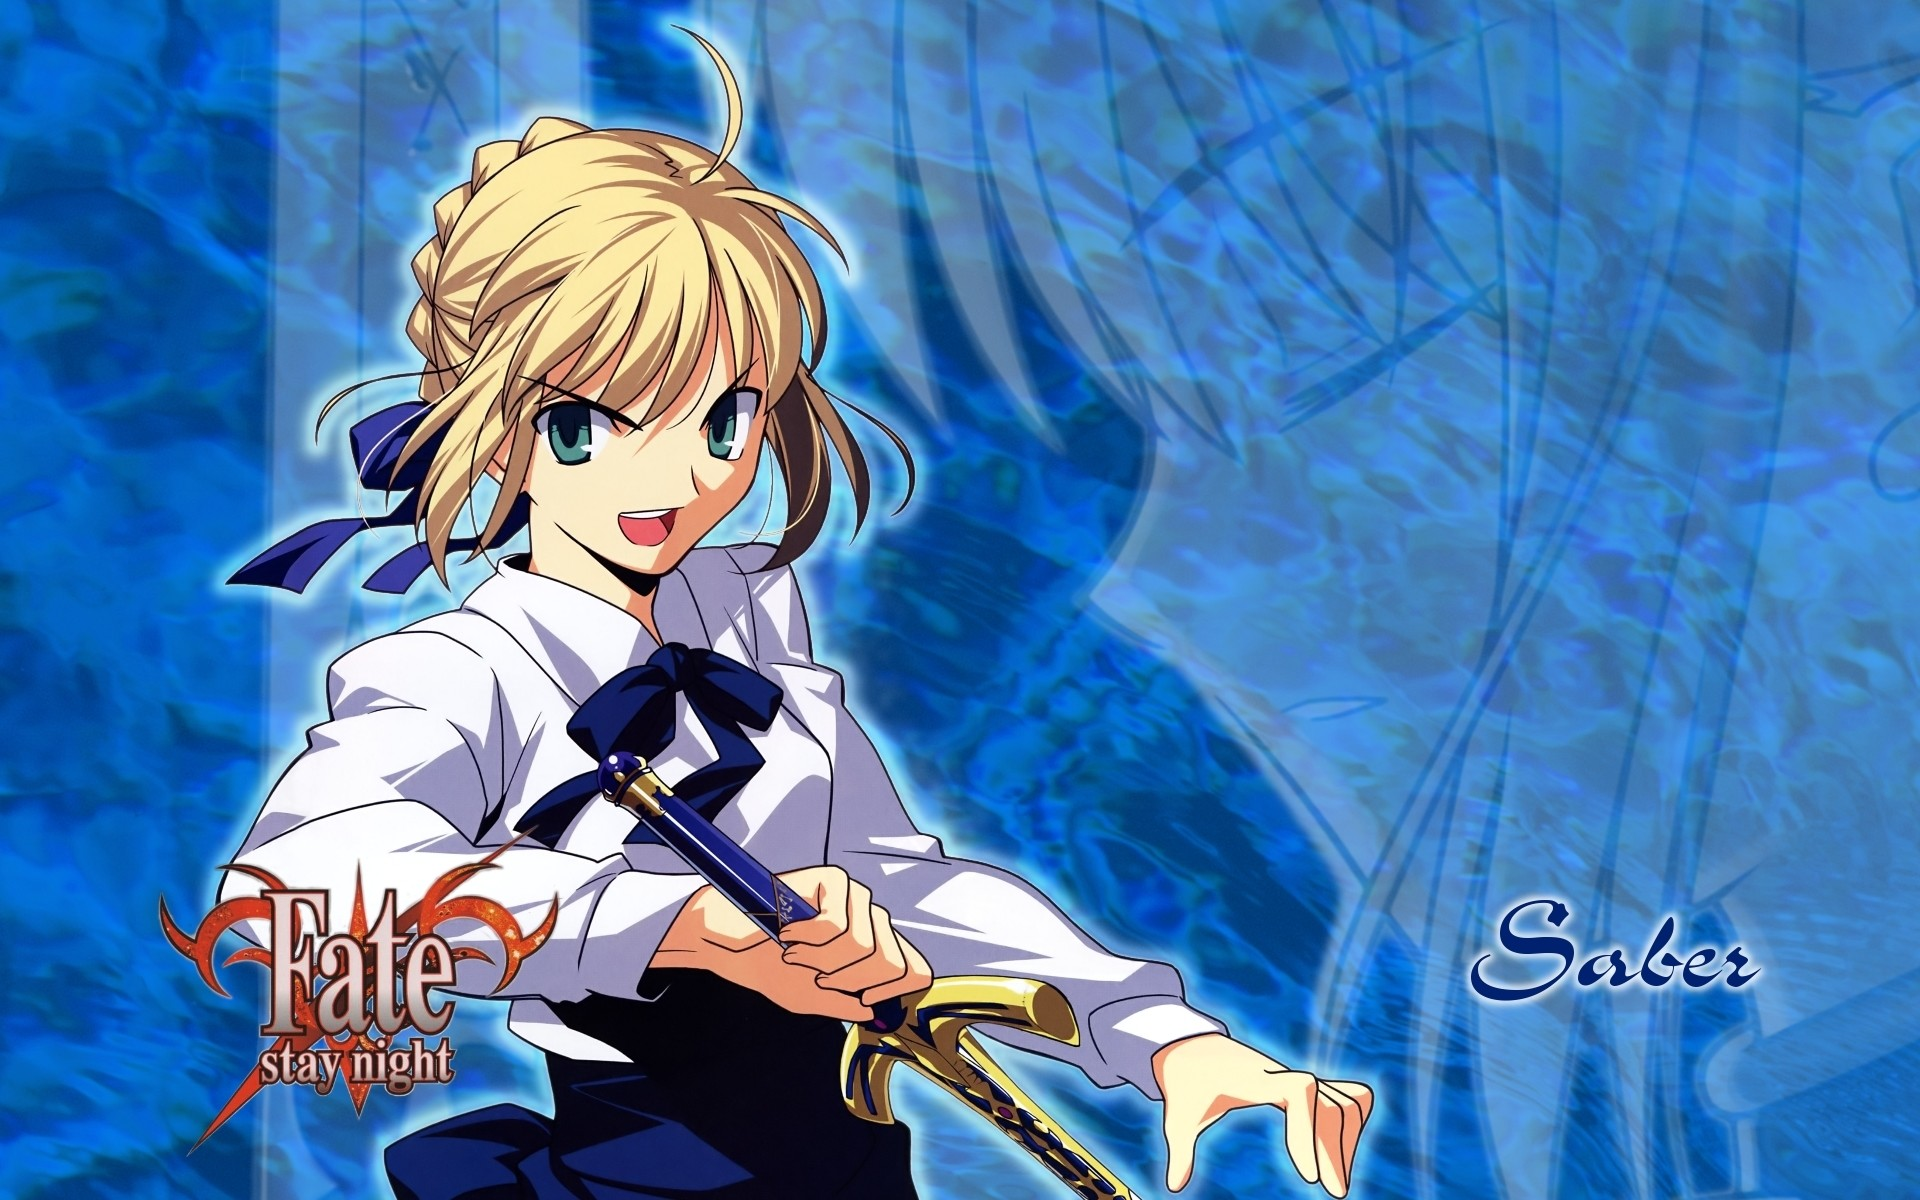 … Saber – Fate/Stay night